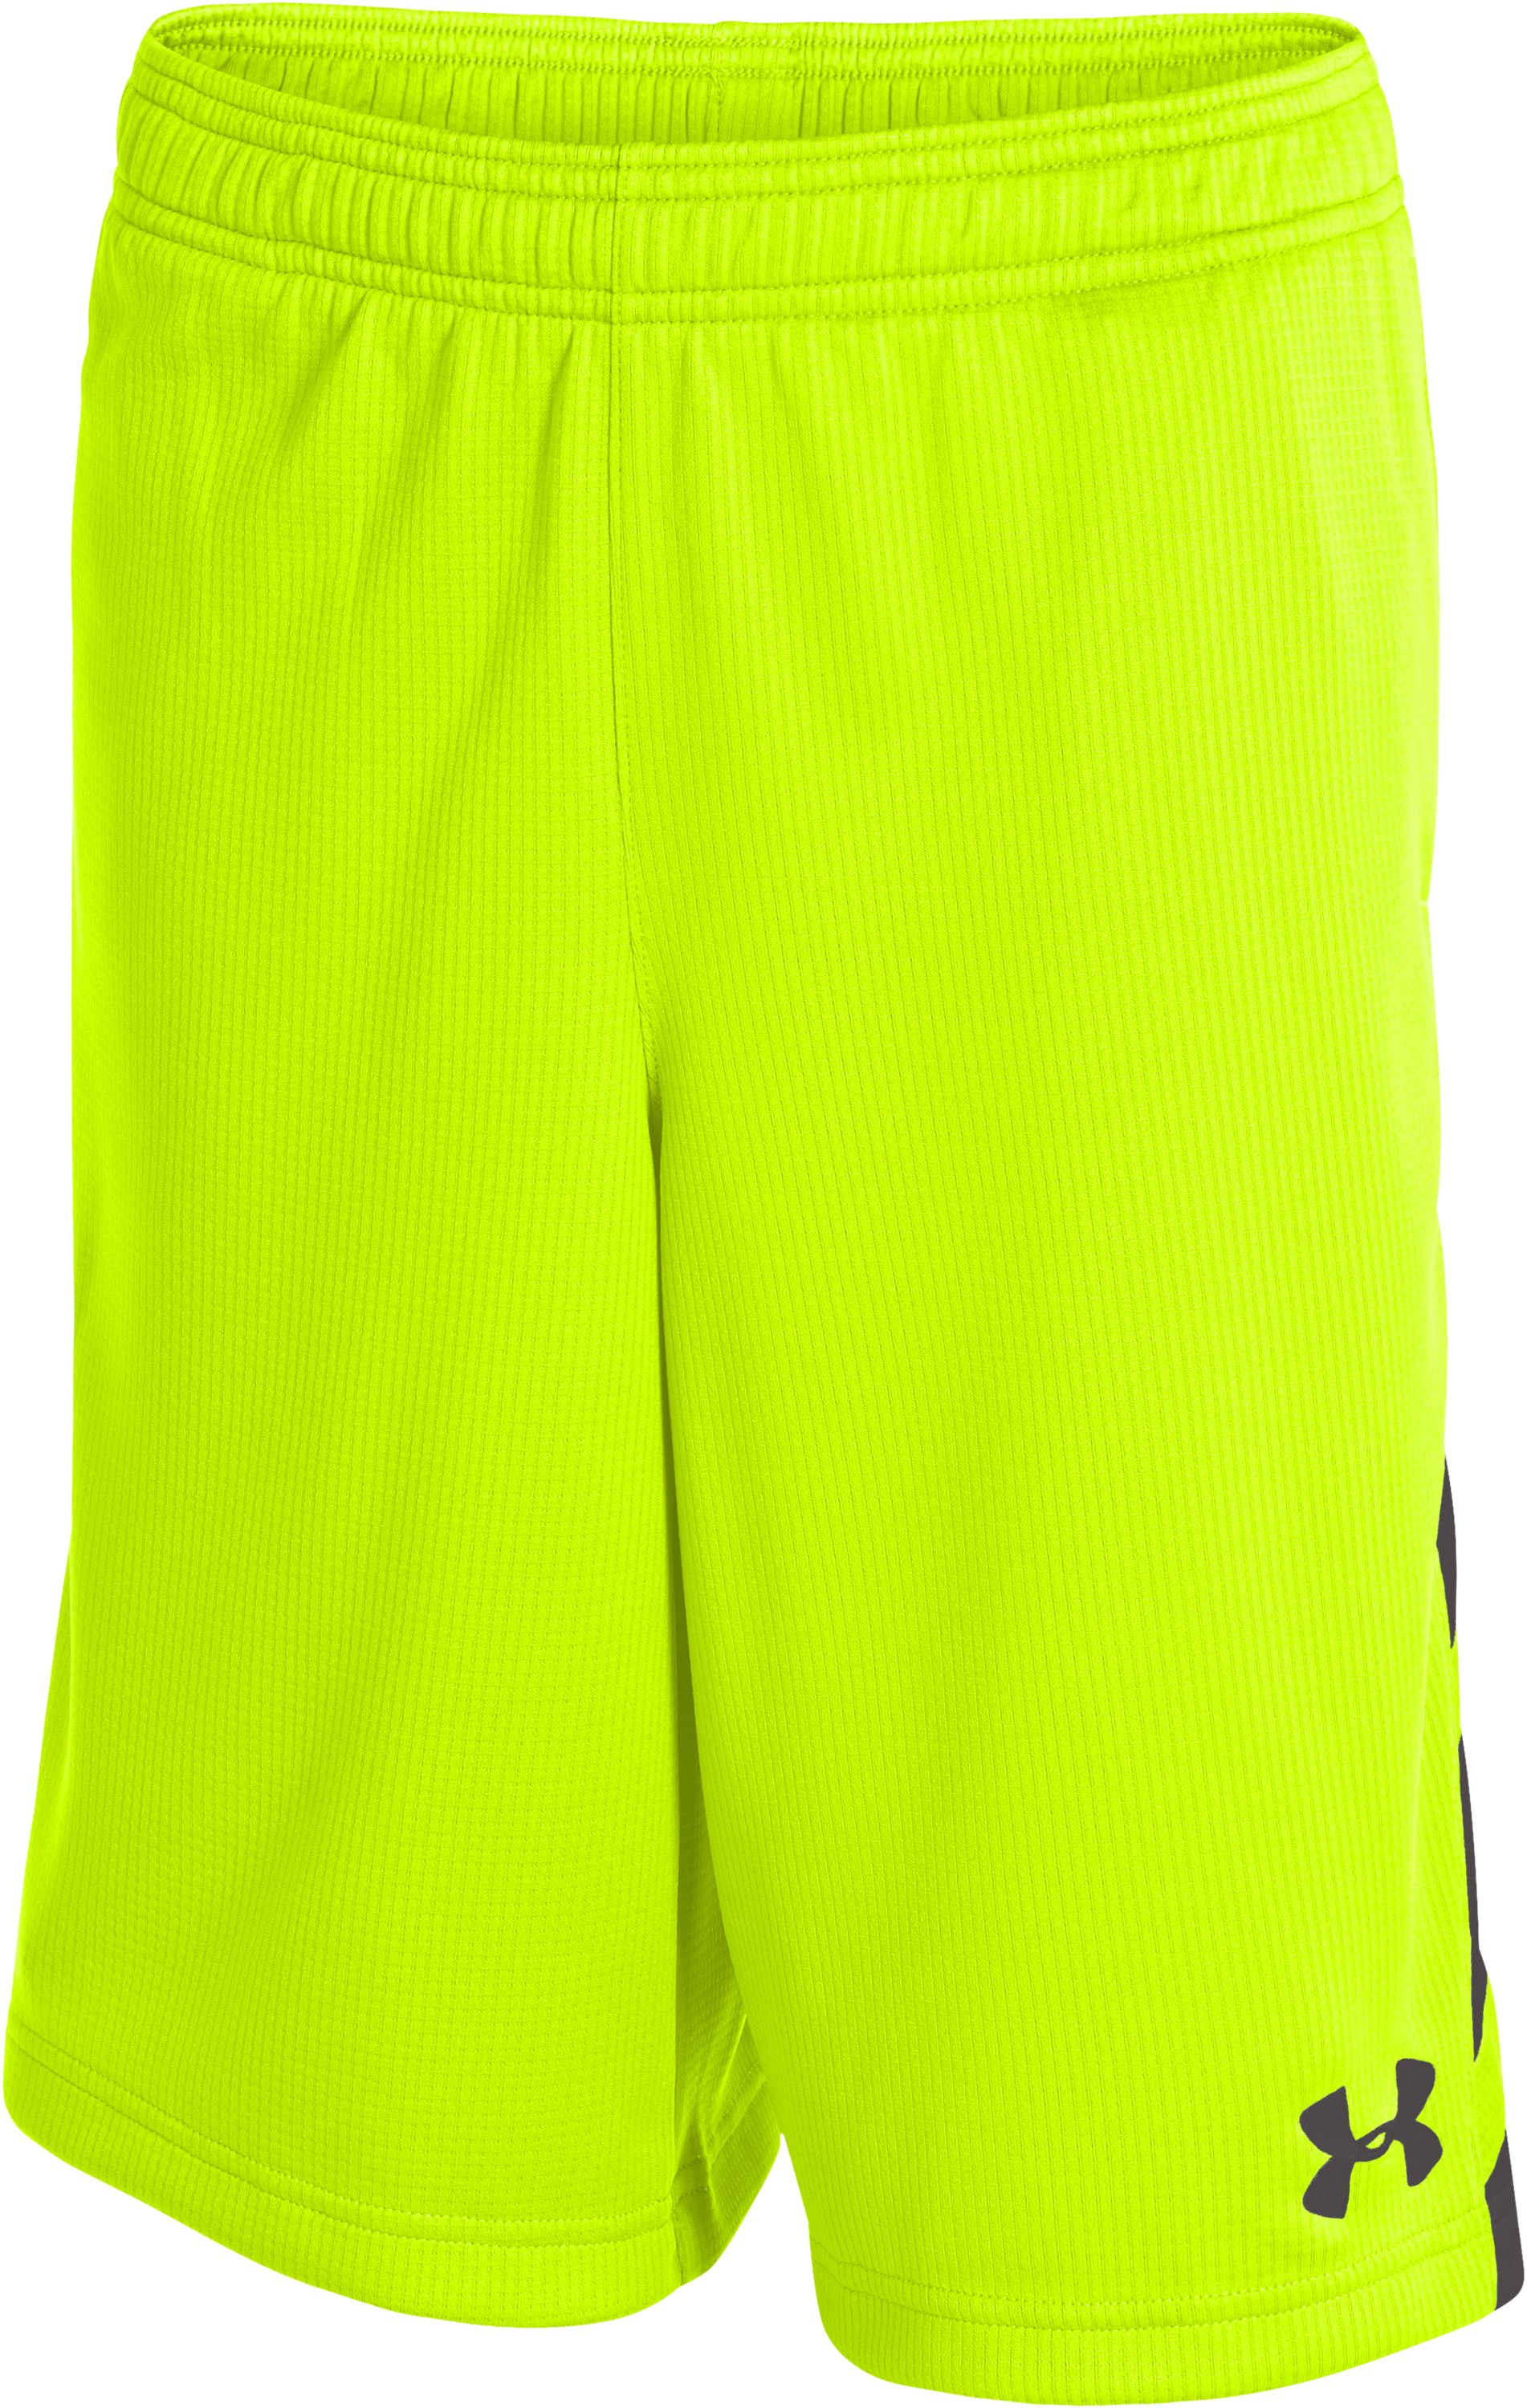 Boys' UA Big Timin Shorts, High-Vis Yellow